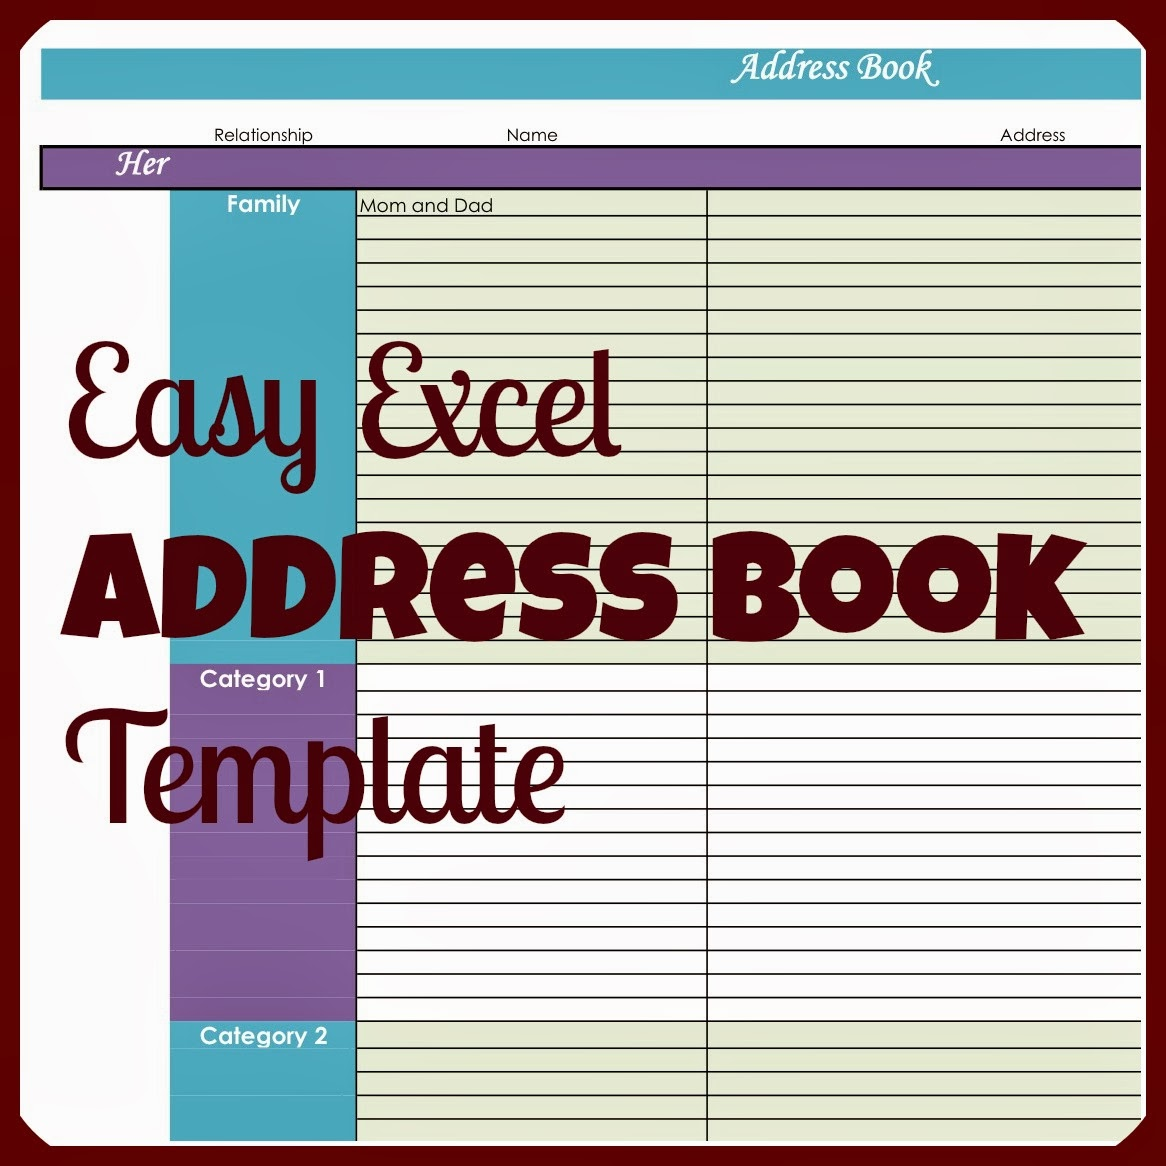 electronic address book template laura 39 s plans easy excel address book template